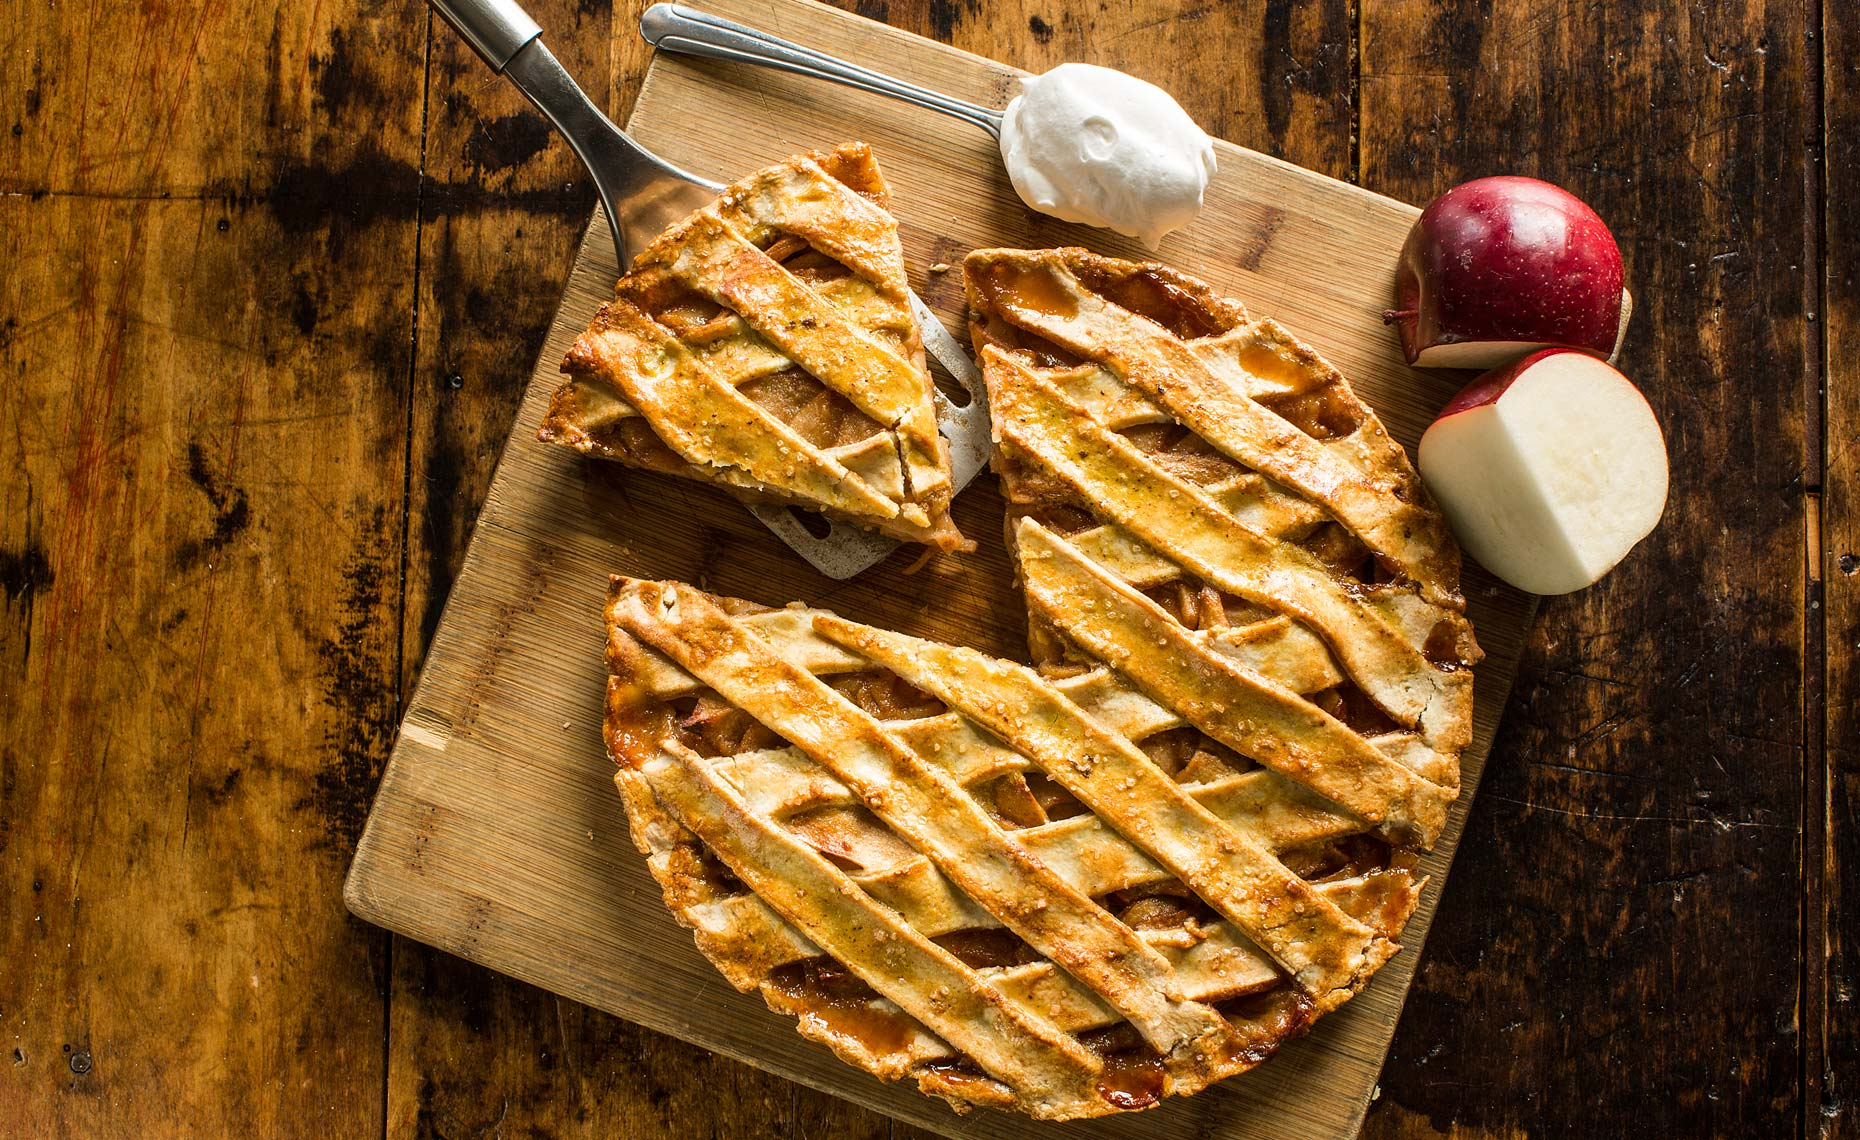 Apple_Pie_Food_Photography.jpg